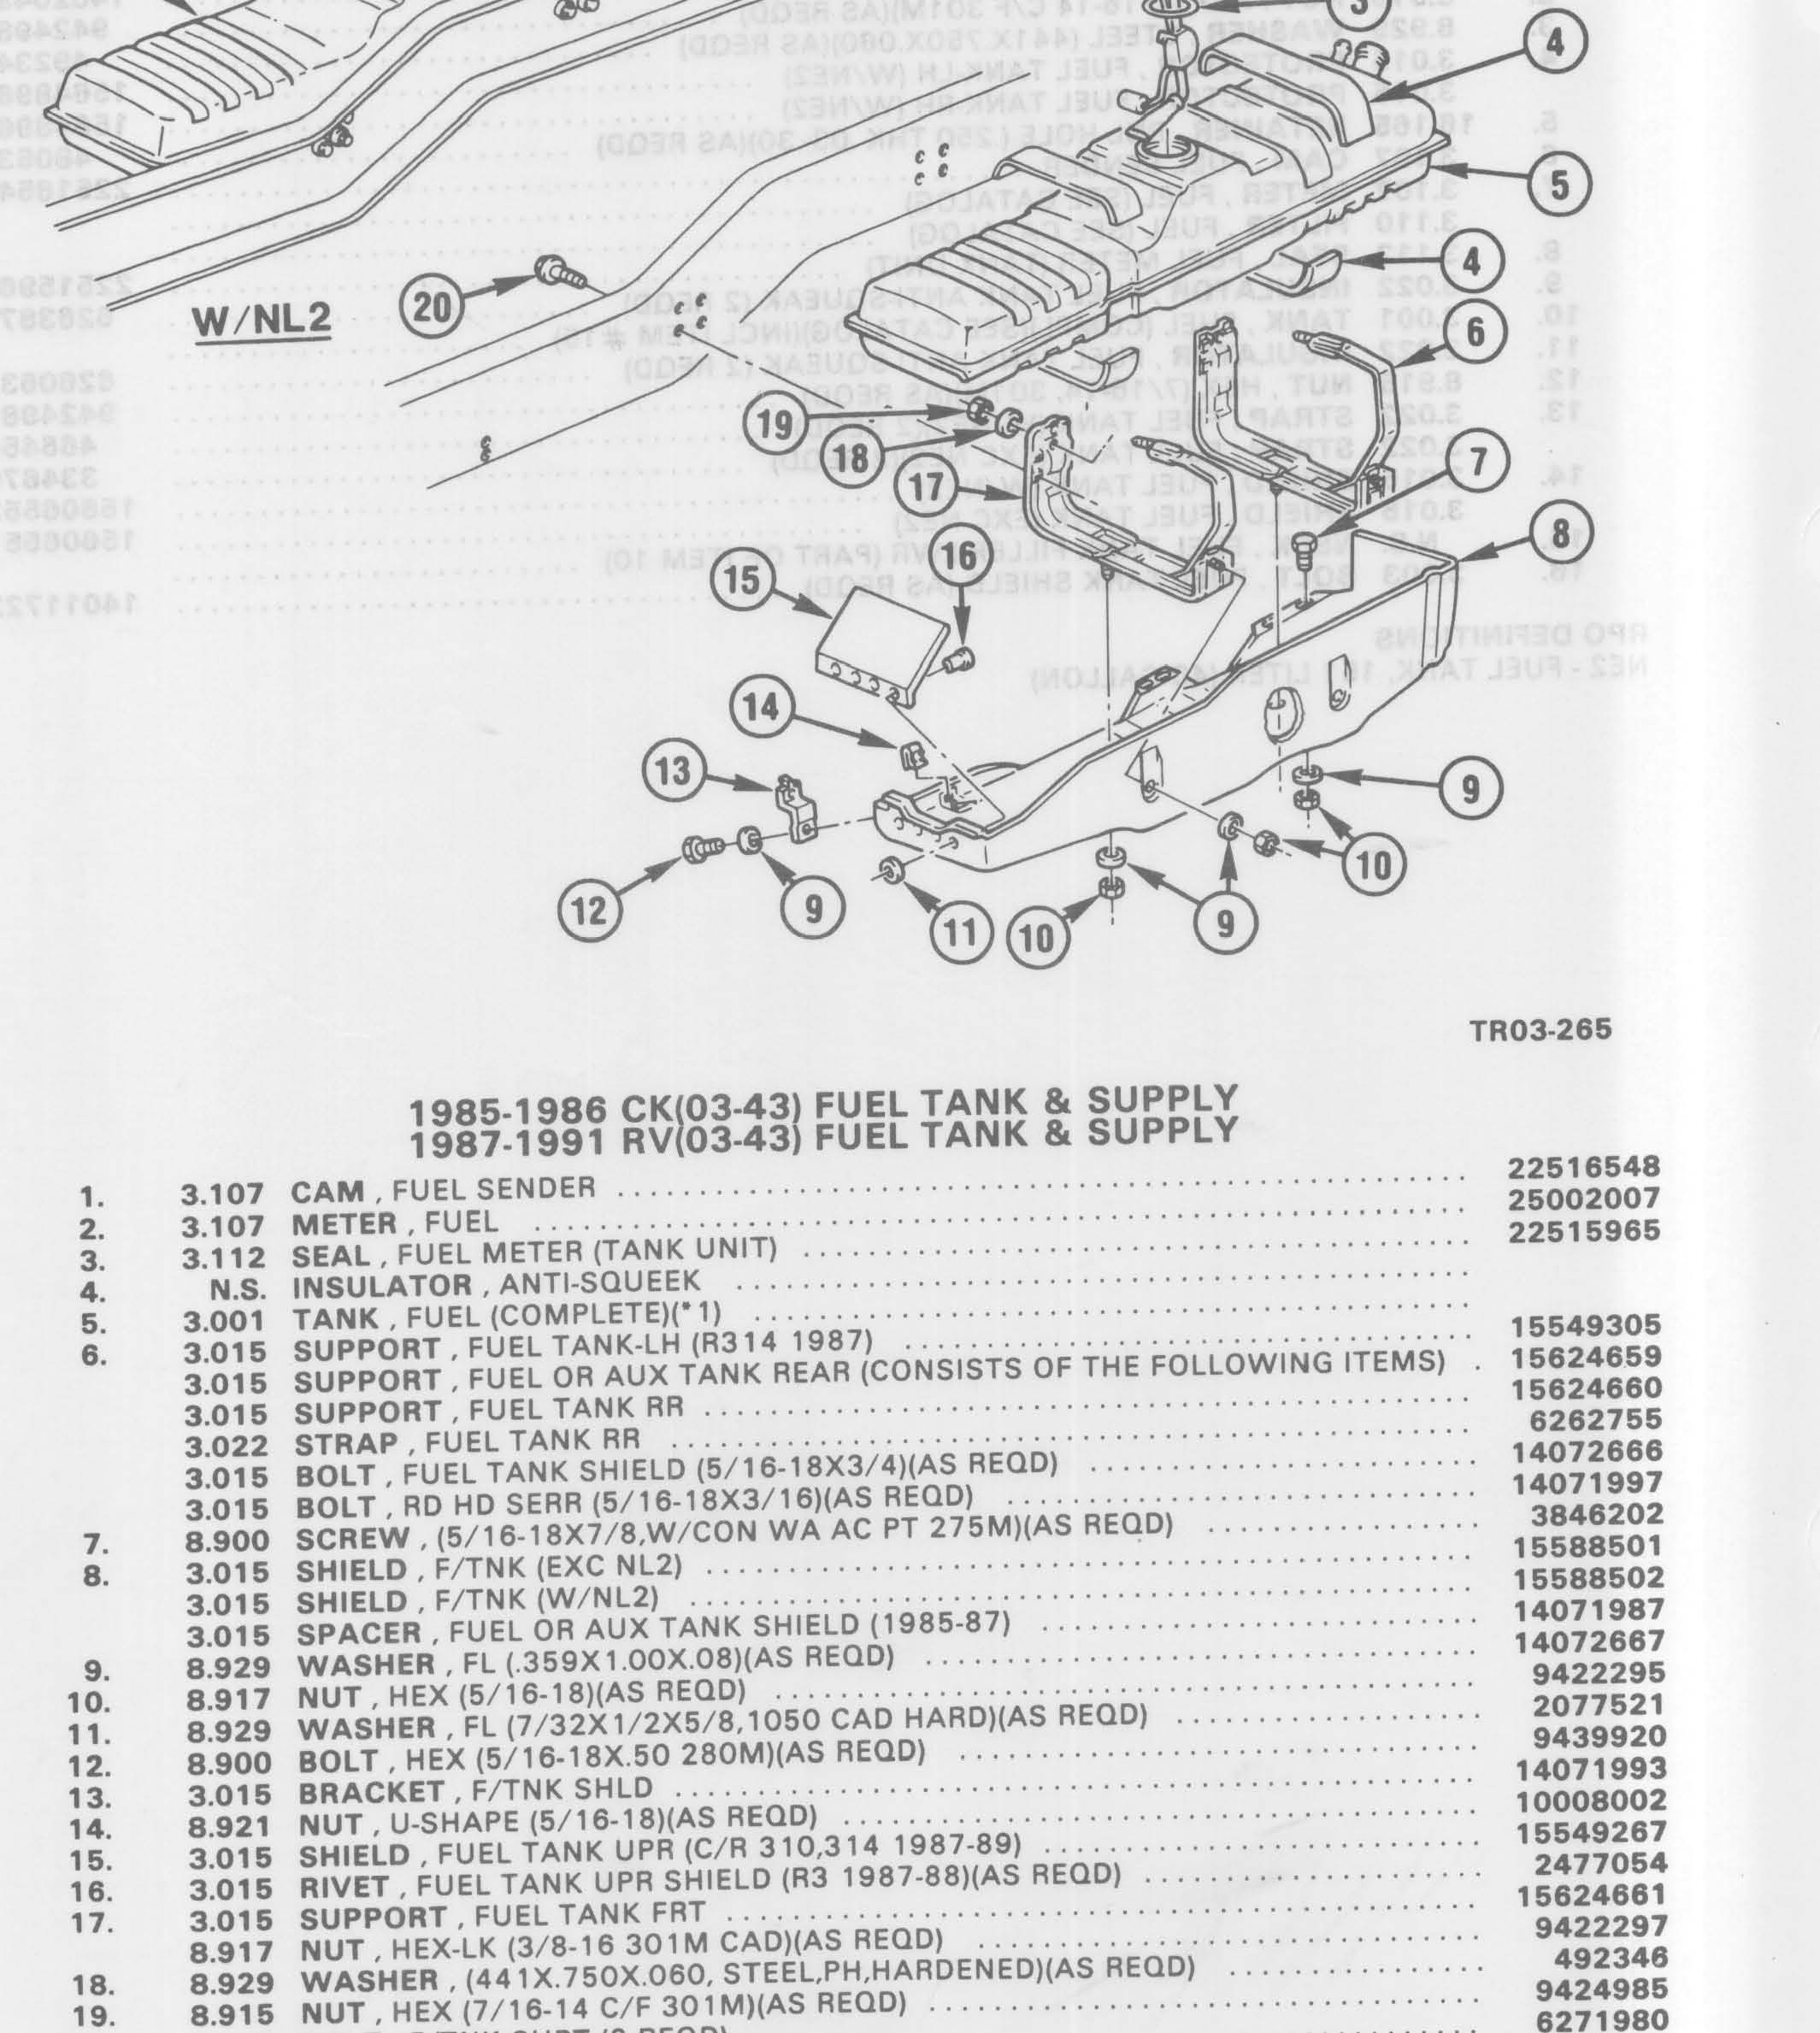 Fuel Tank And Bracketing And Shields Fuel Tank And